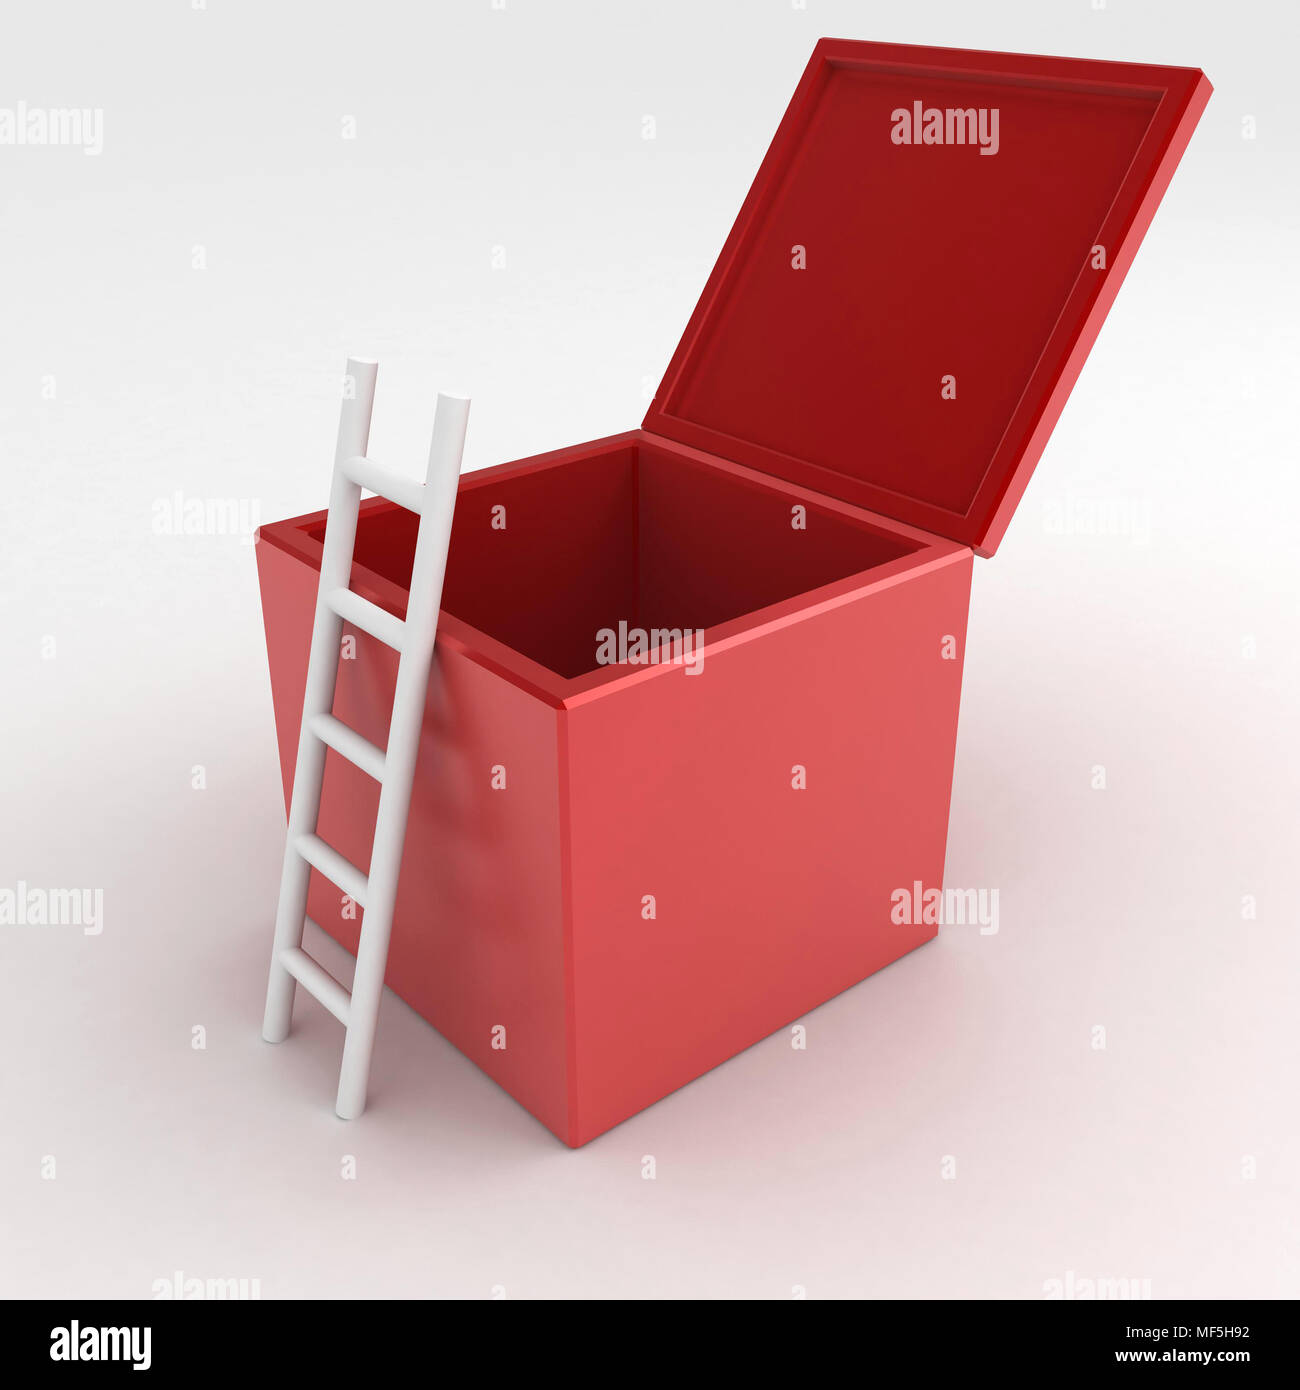 3d ladder box, on white surface - Stock Image